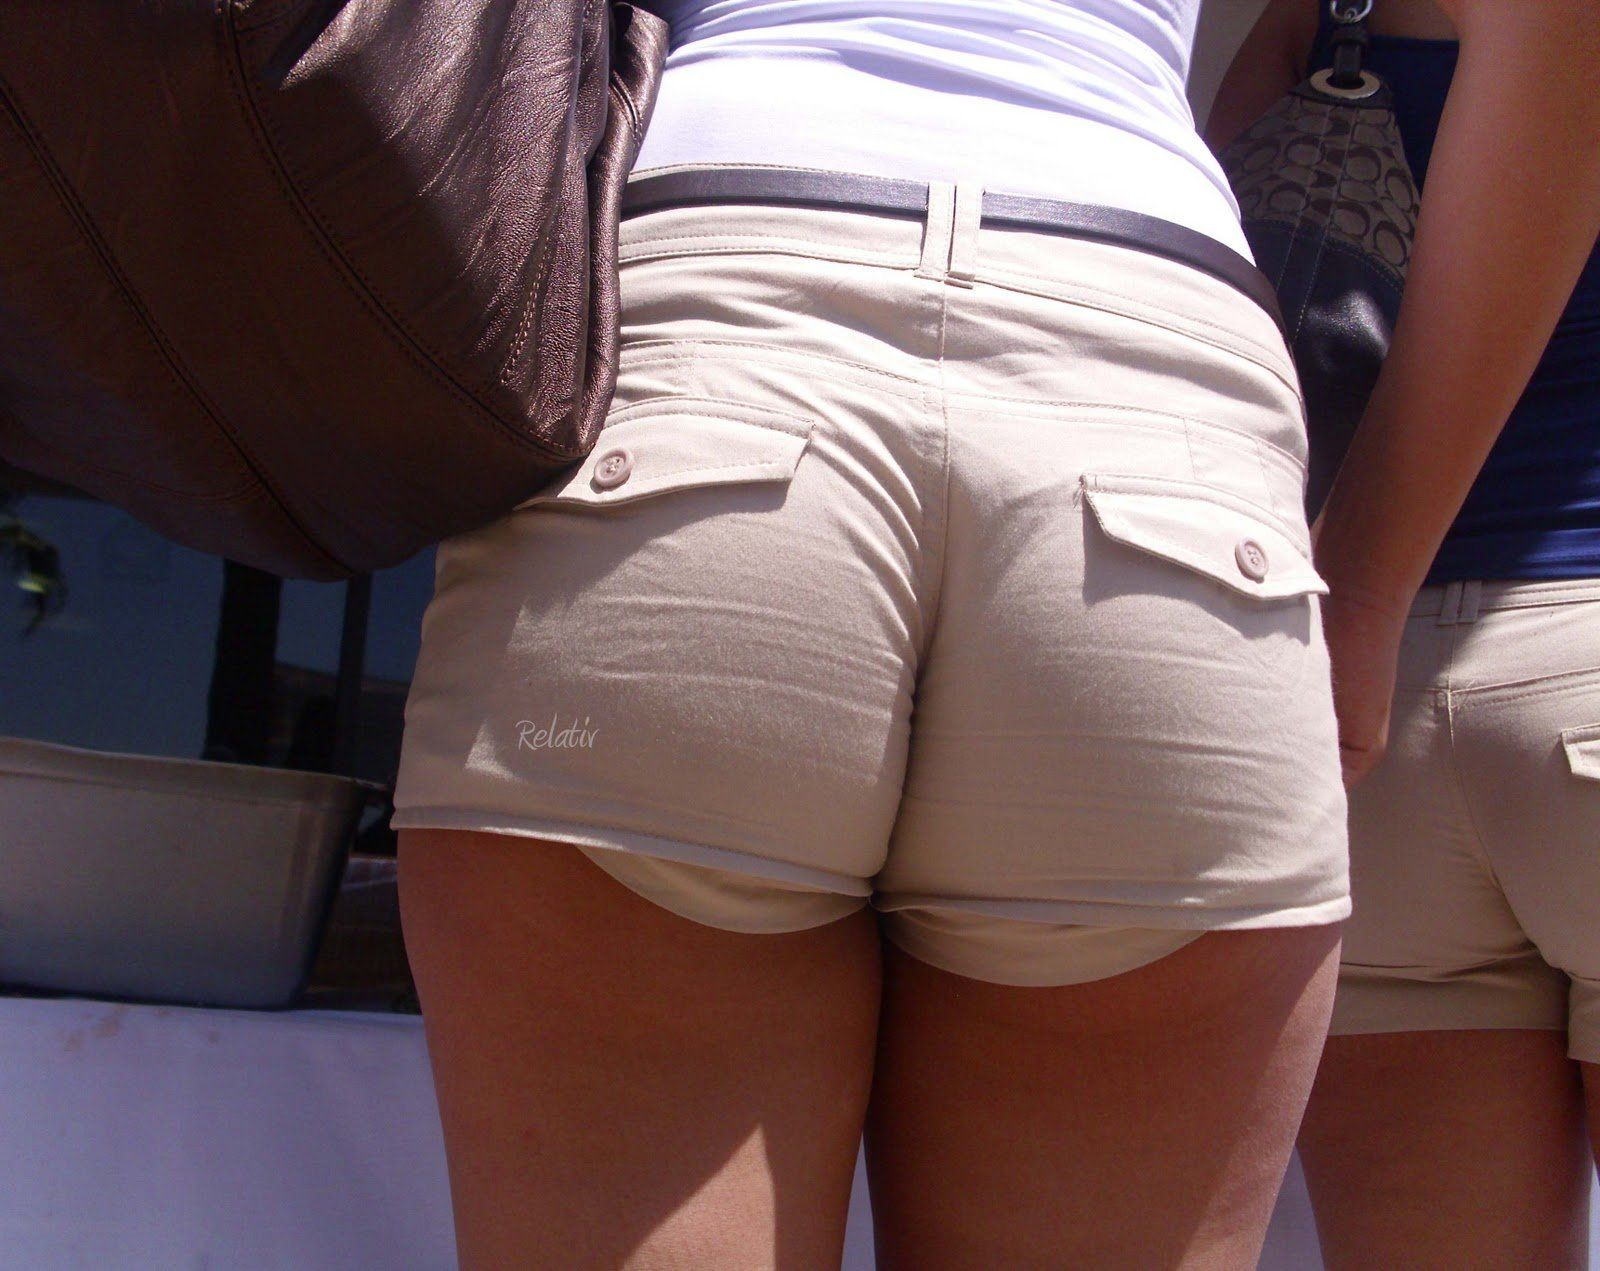 Big ass in shorts pics at round ass porn